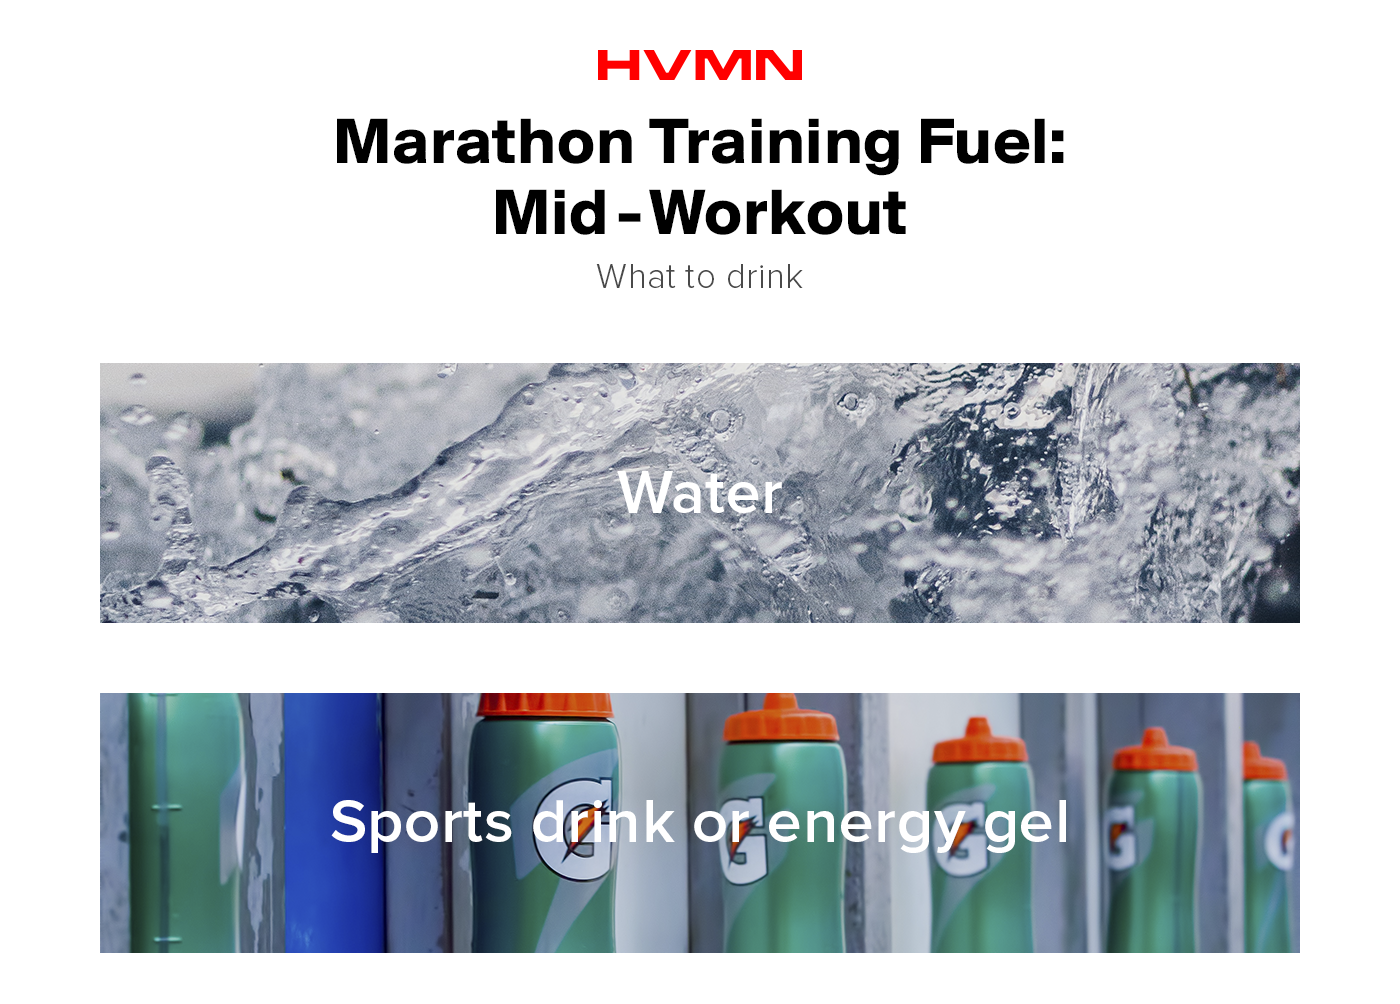 Mid-workout fuel options for marathon training.